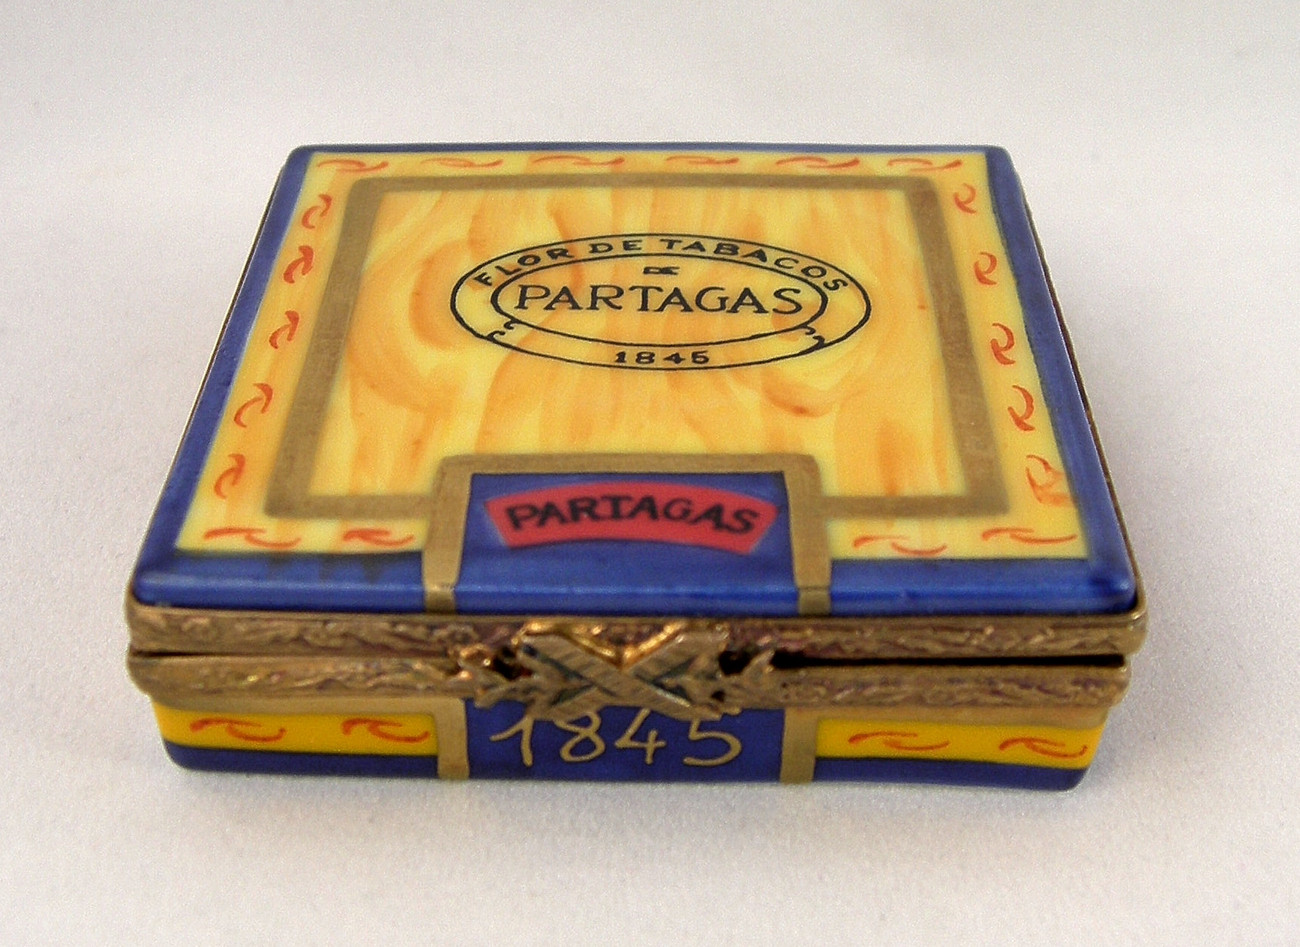 Limoges Partagas 1845 Cigar Box with Cigars Inside - Tobacco - Peint Main